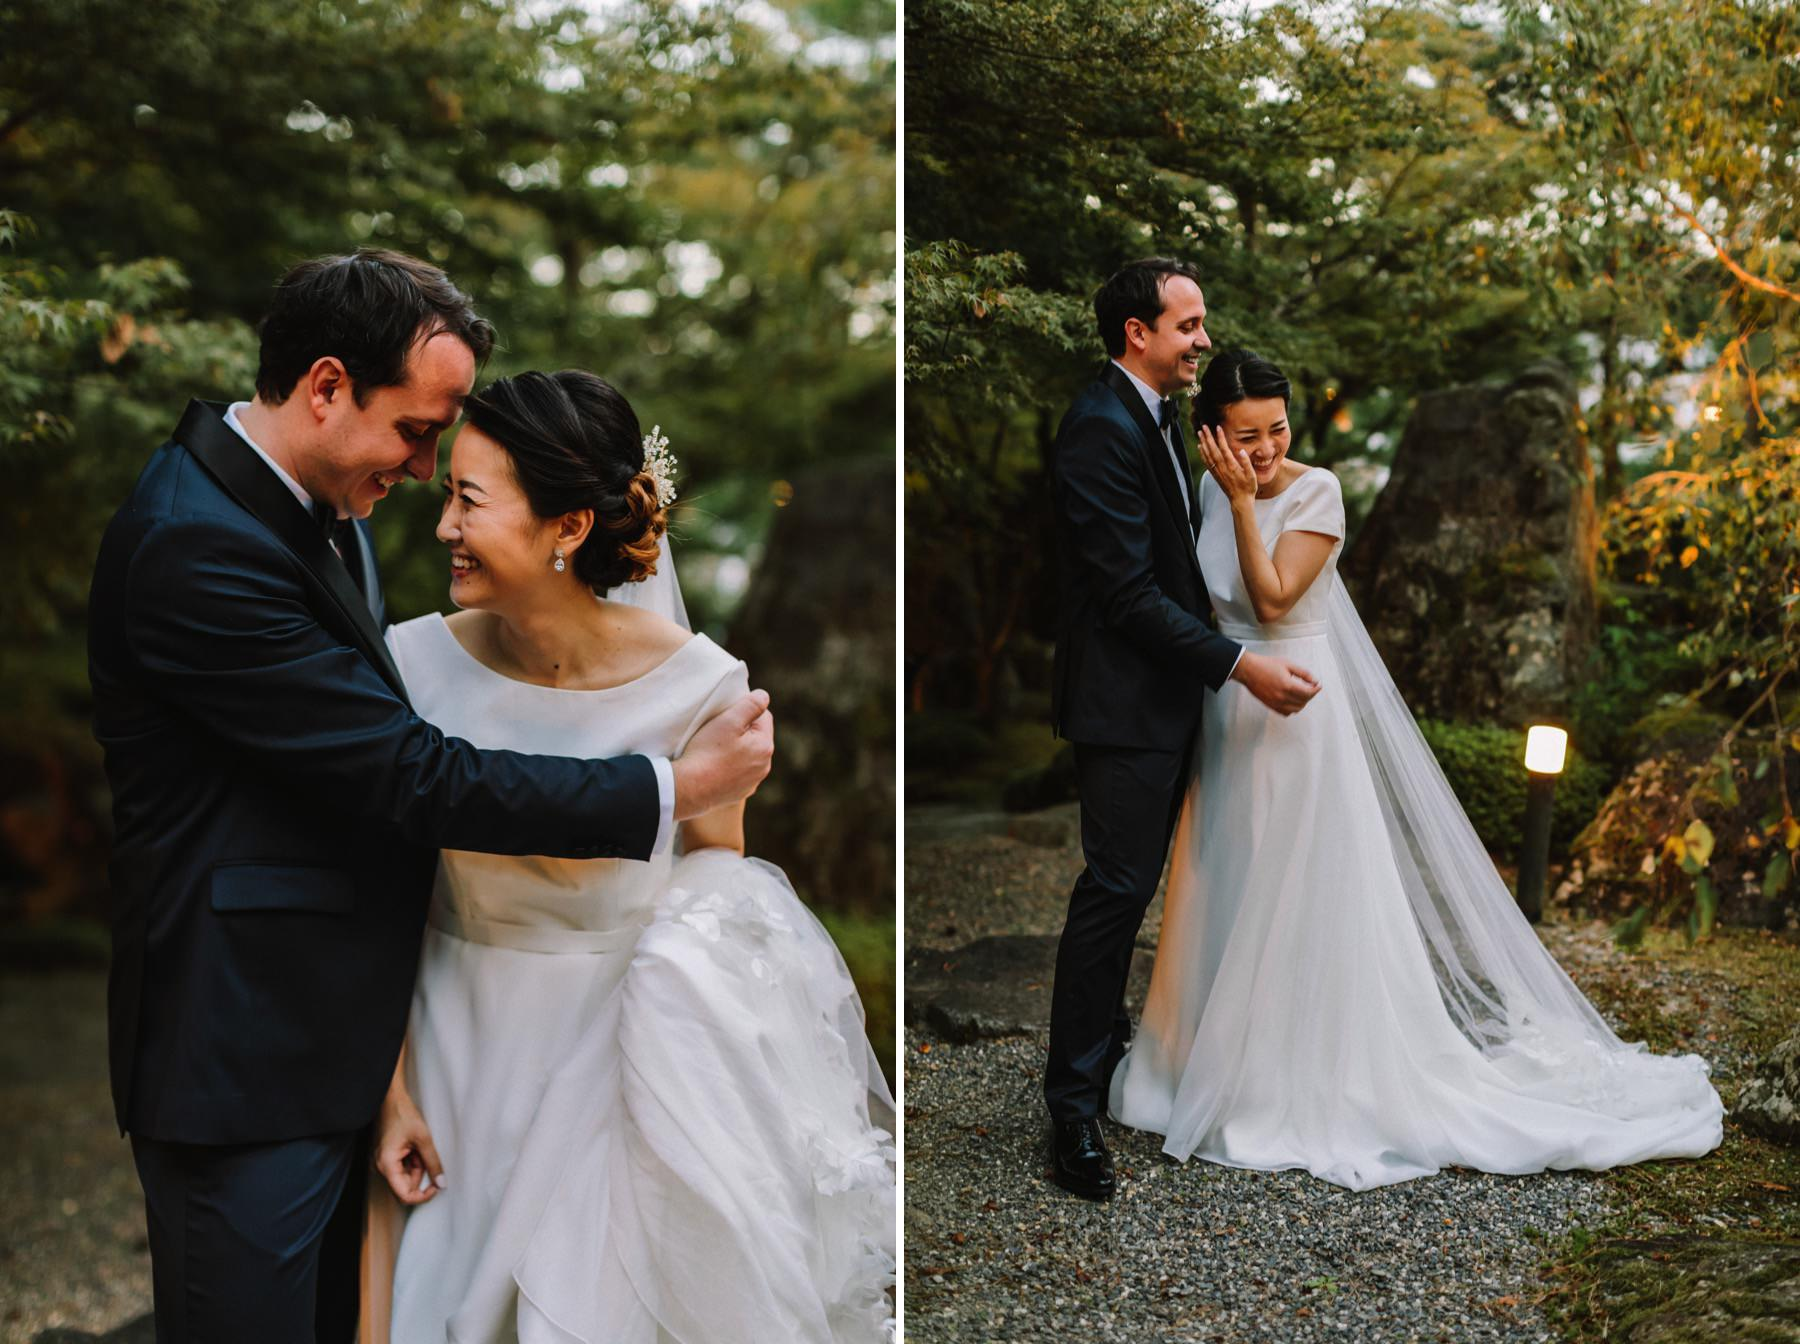 Shozan resort wedding Kyoto